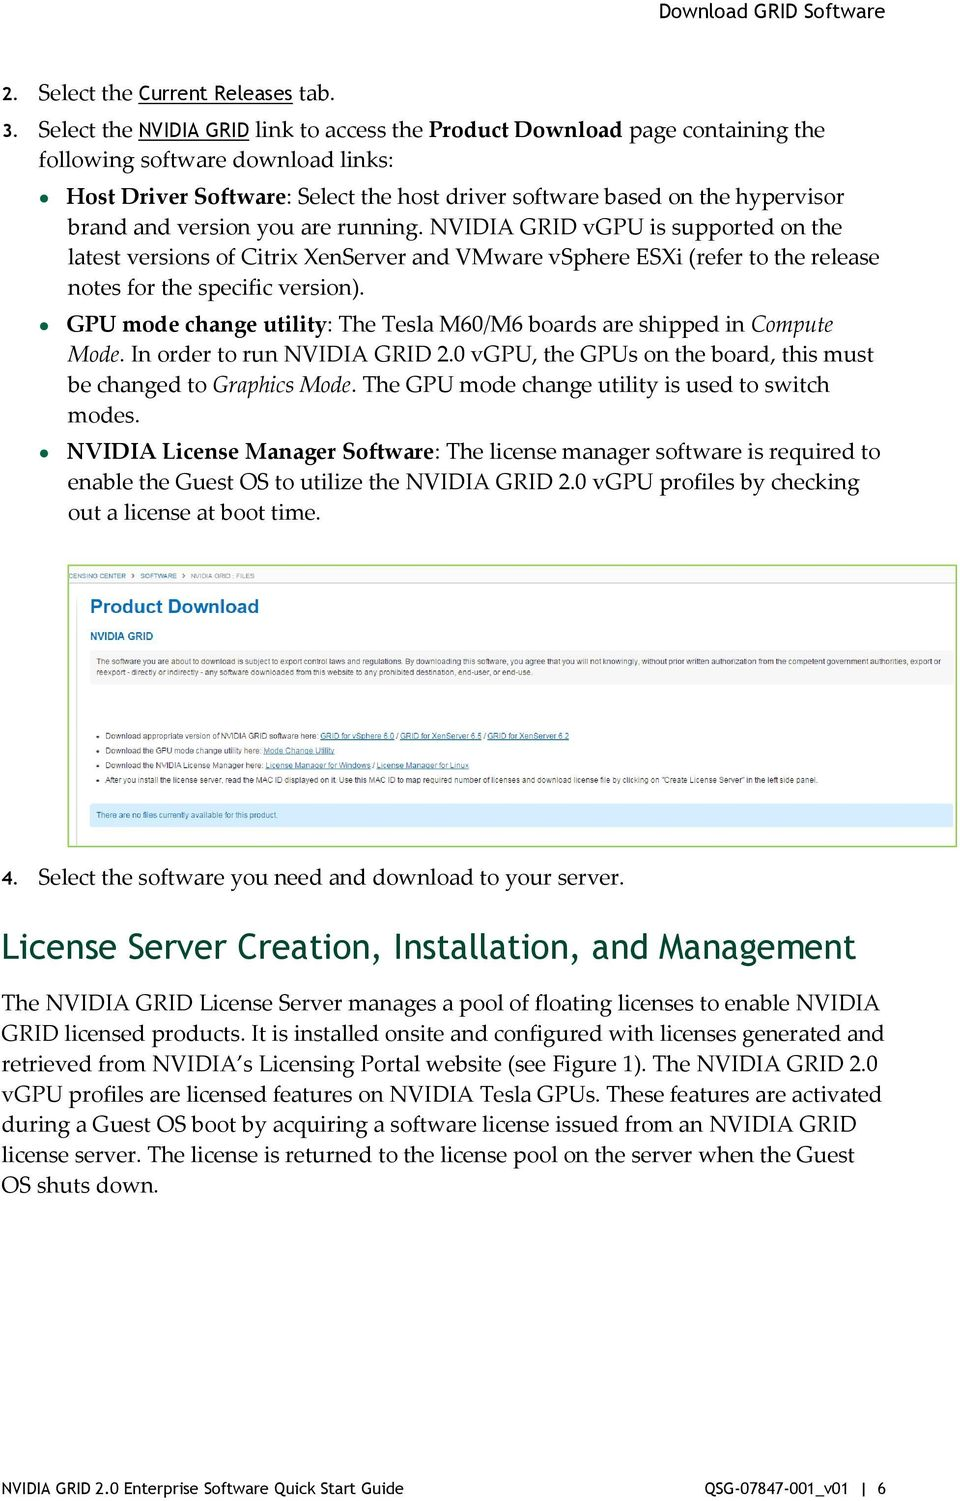 NVIDIA GRID 2 0 ENTERPRISE SOFTWARE - PDF